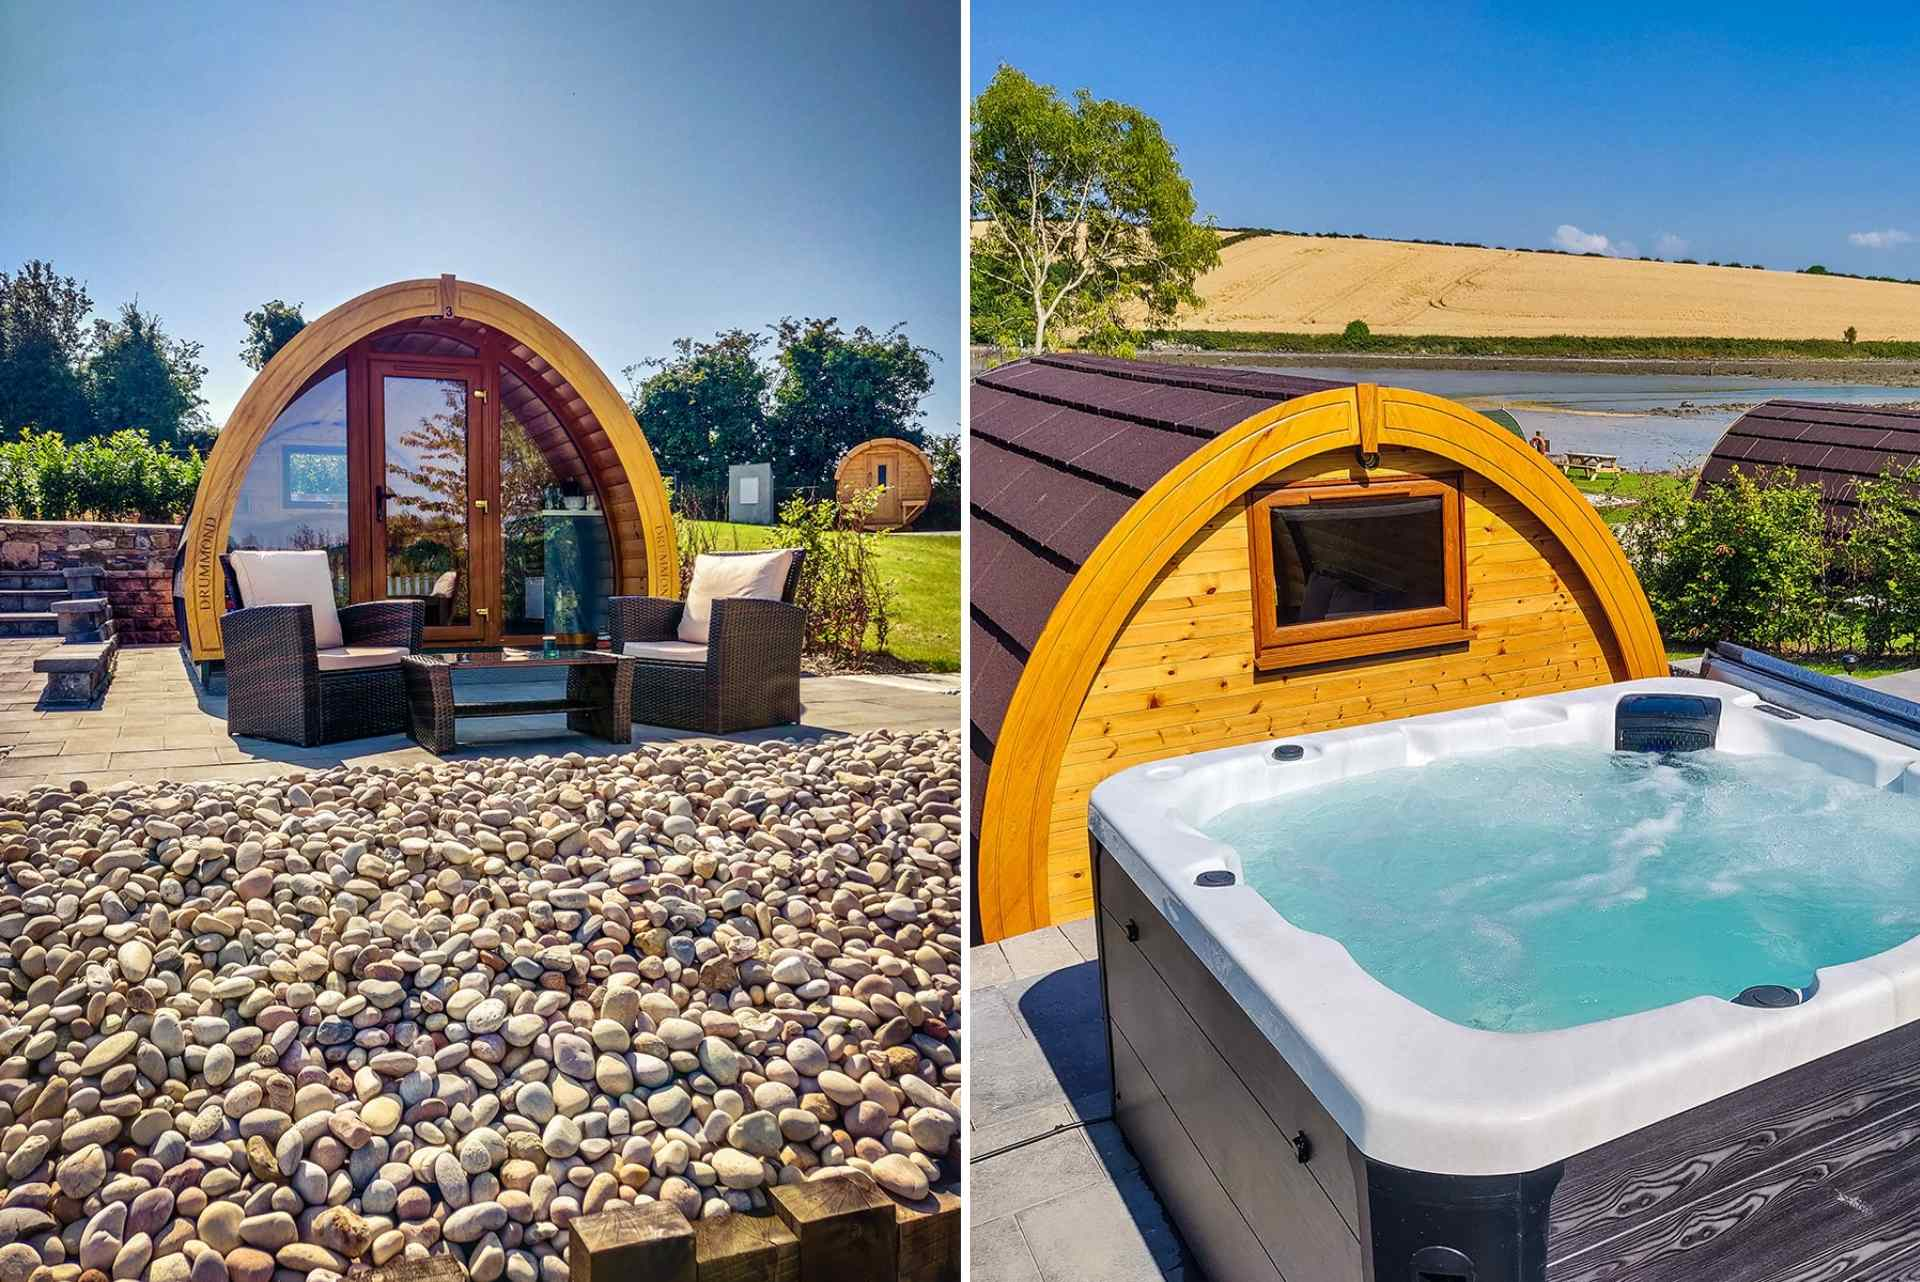 pebble-pods-with-outdoor-hot-tub-and-seating-on-strangford-lough